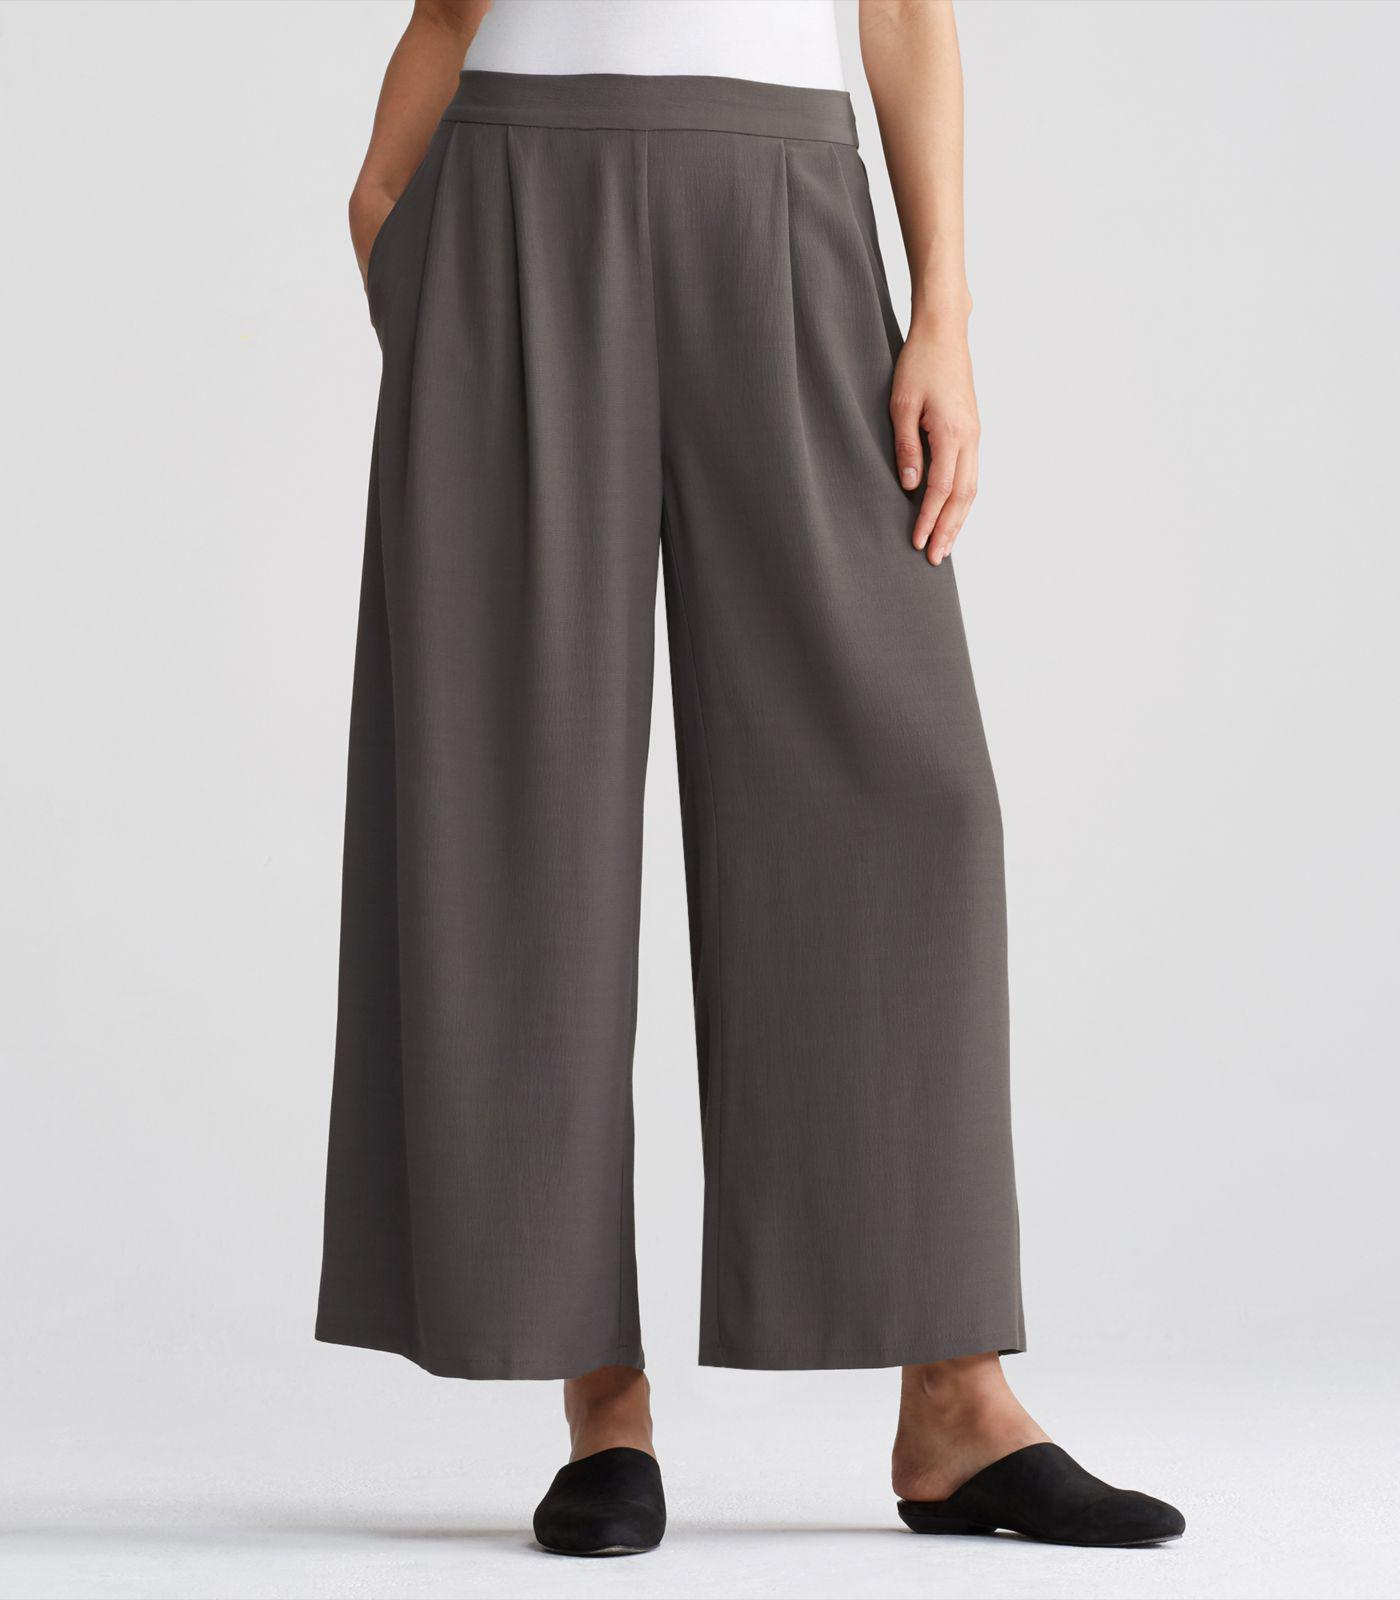 06485d8e4b1 Lyst - Eileen Fisher Tencel Viscose Crepe Wide-leg Ankle Pant in Gray